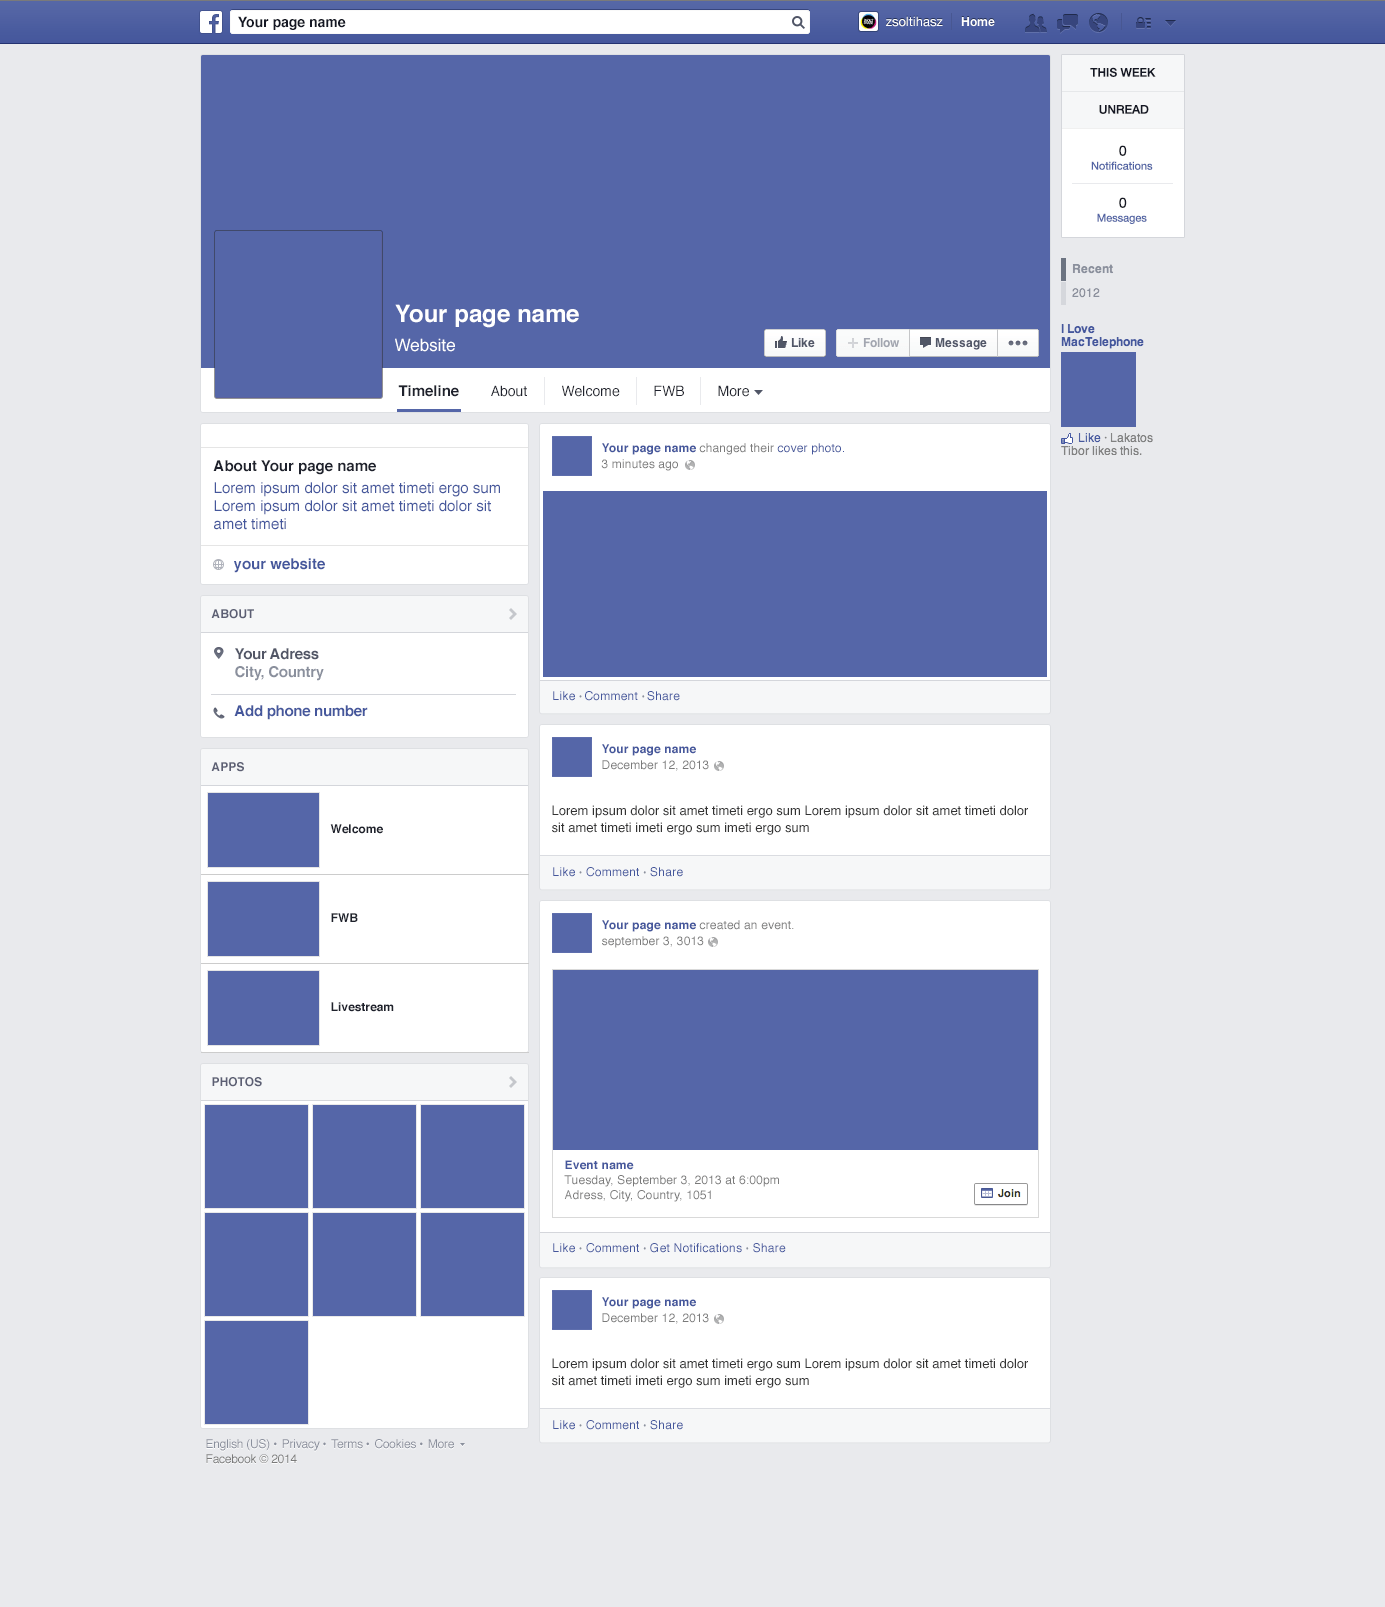 Facebook page mockup - Free Graphics